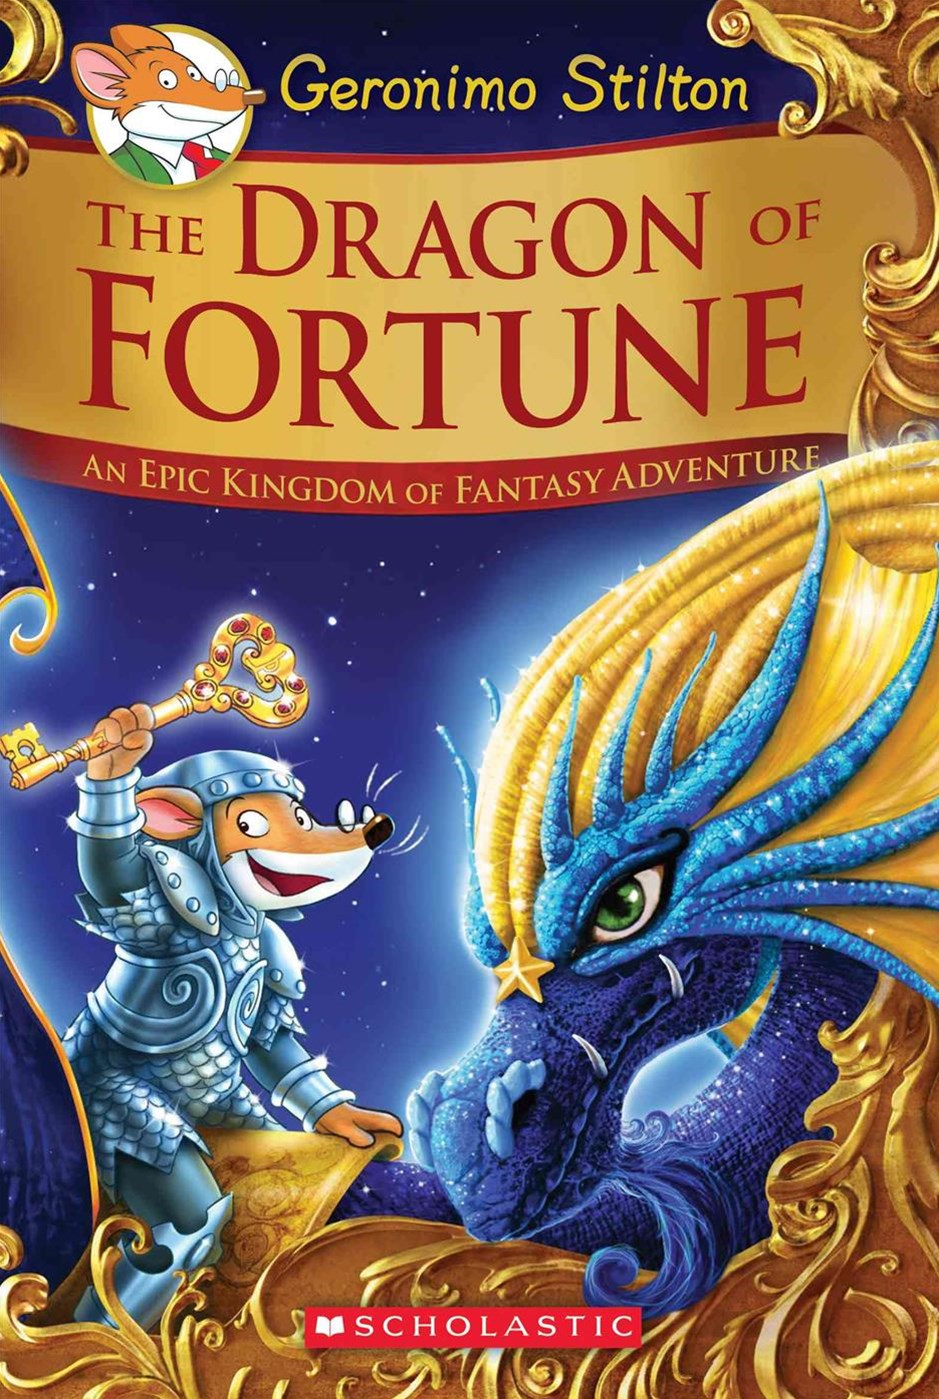 Geronimo Stilton and the Kingdom of Fantasty SE #2: The Dragon of Fortune